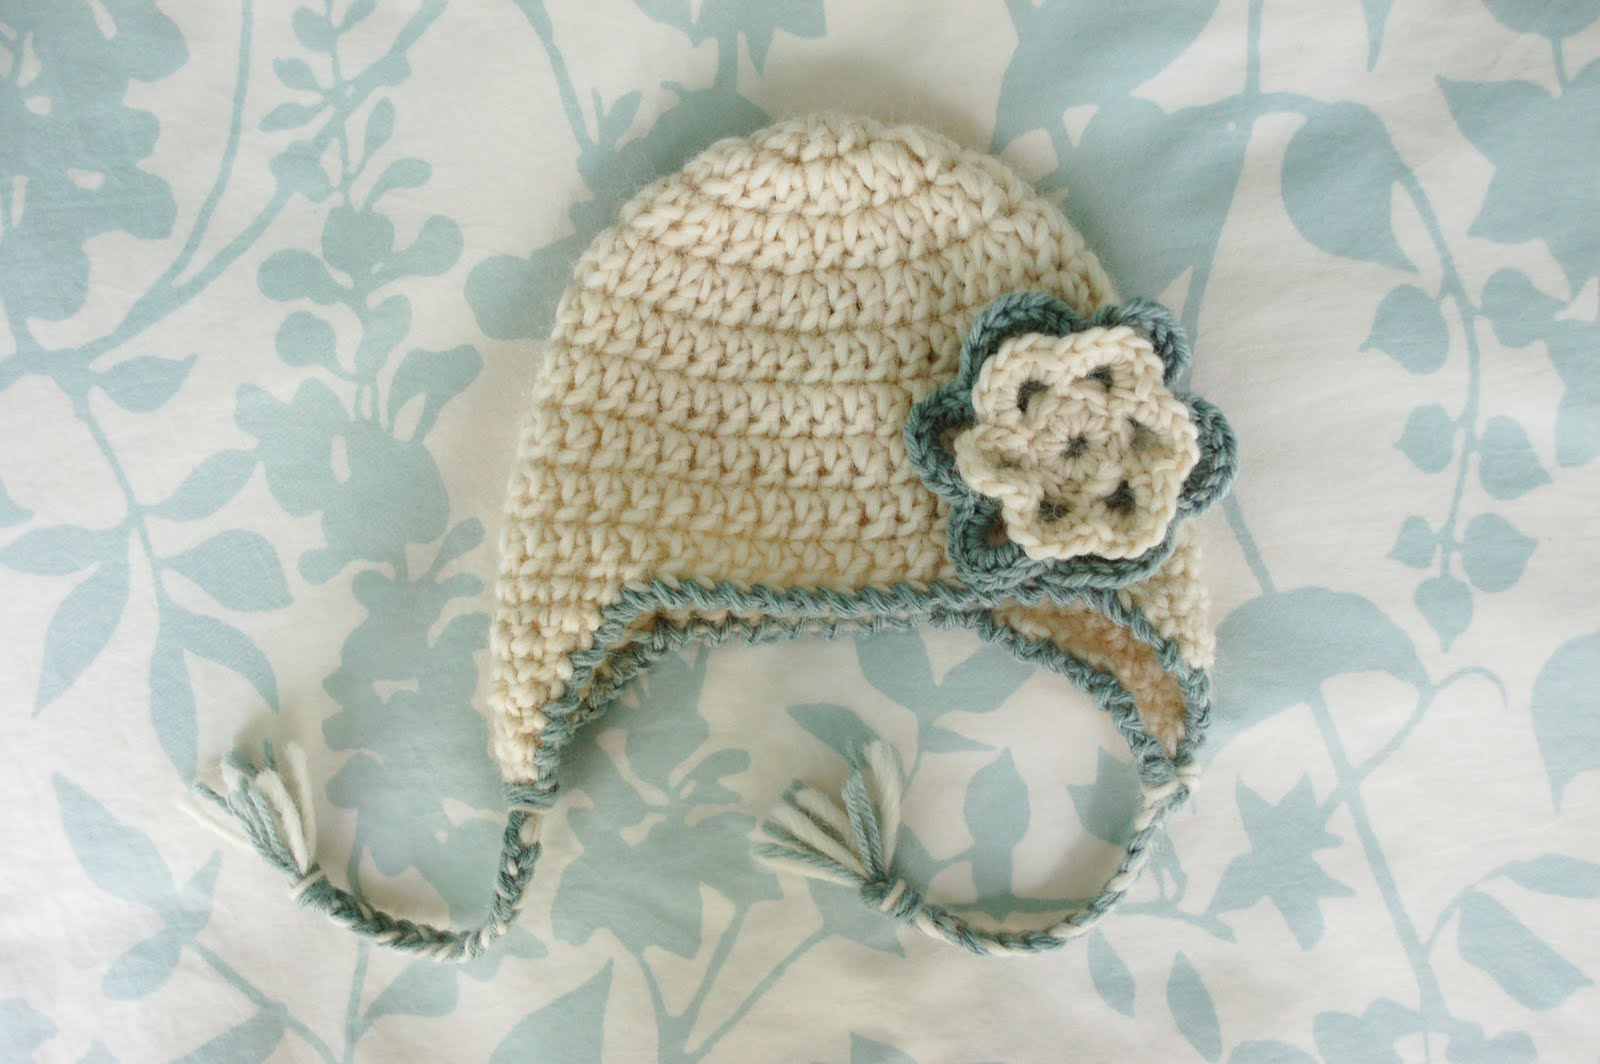 Free Crochet Pattern For Infant Hat : Alli Crafts: Free Pattern: Baby Earflap Hat - Newborn